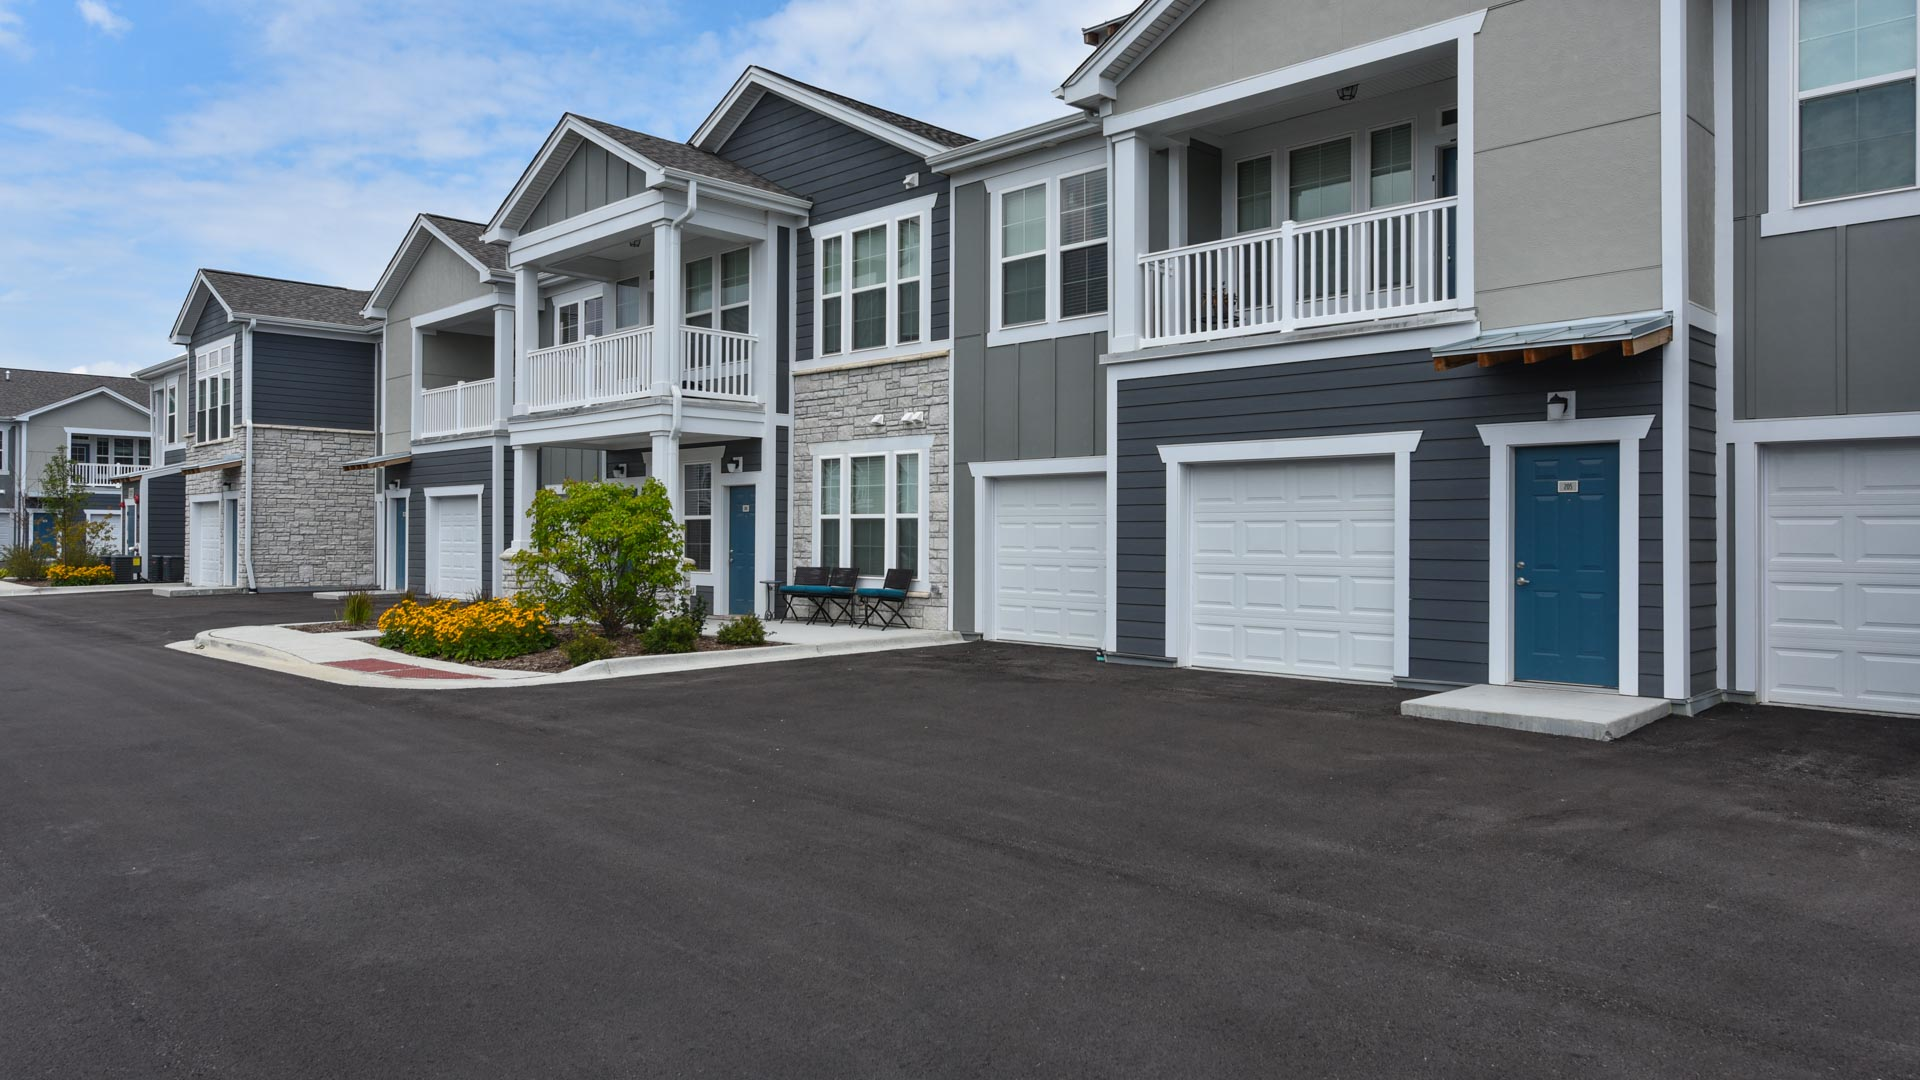 Attached Garages and Private Entries at Springs at Orchard Road in North Aurora, IL-38